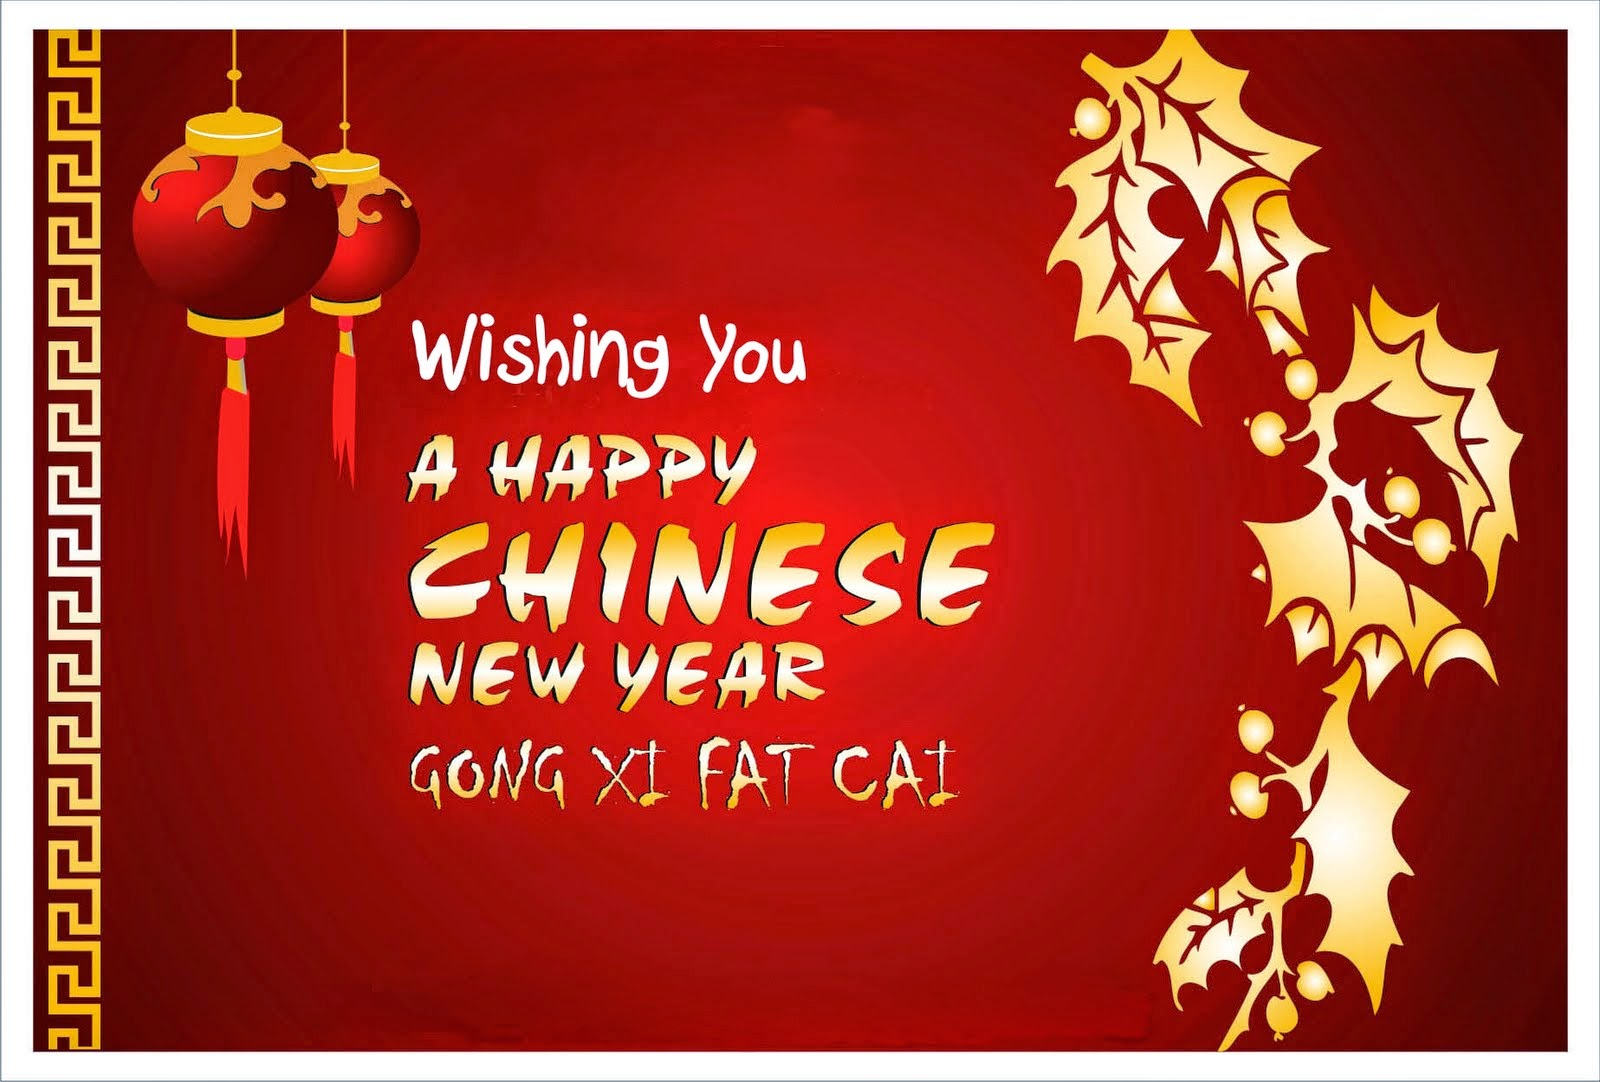 Gong Xi Fa Cai! Happy Lunar New Year =)